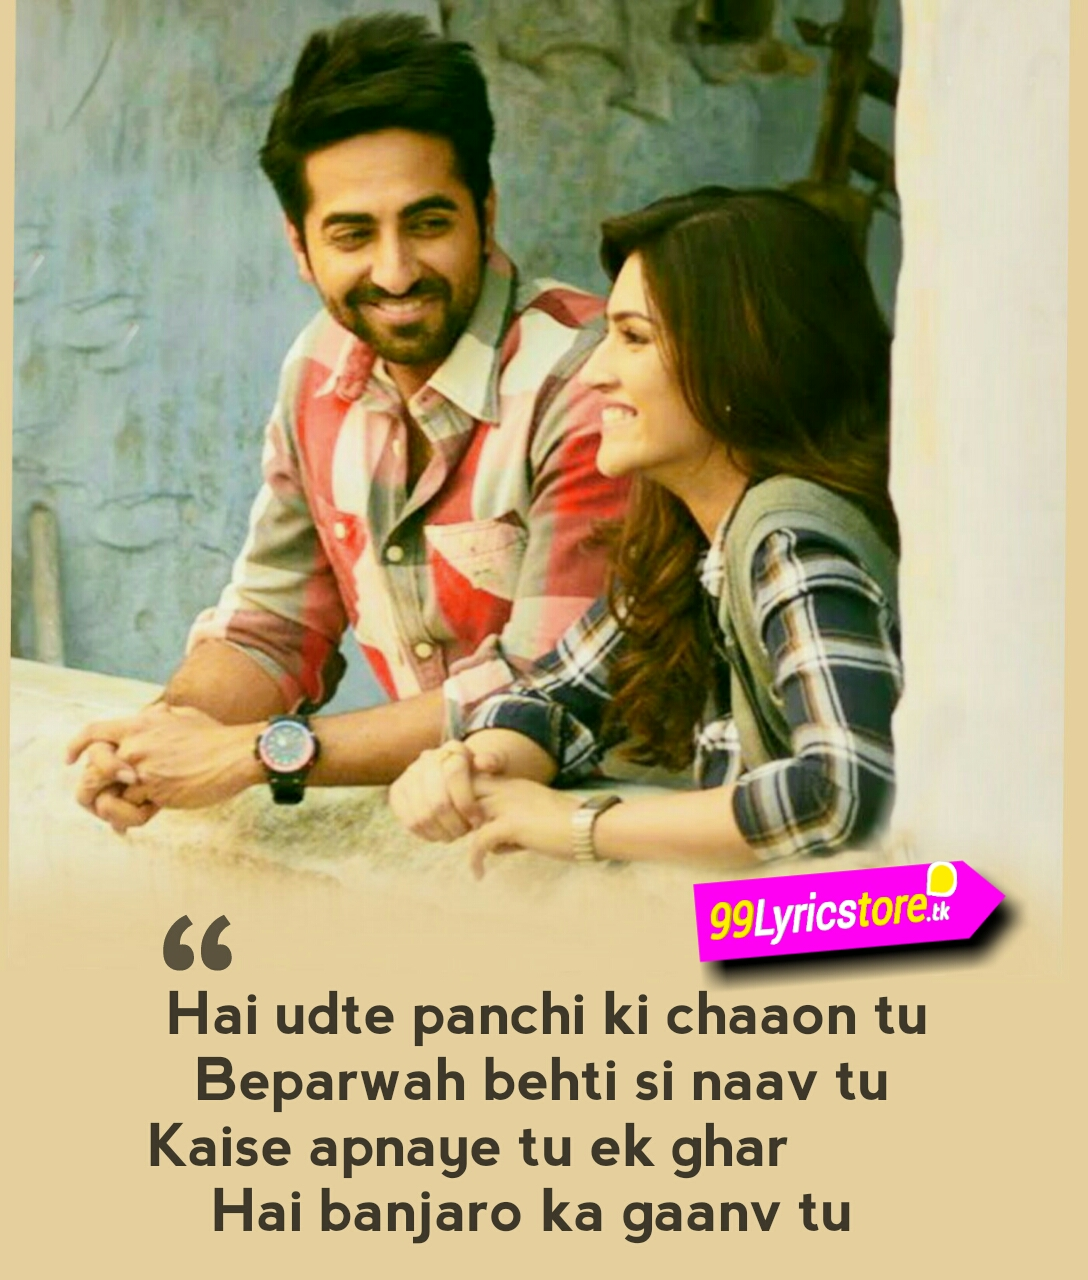 Arijit Singh Bairaagi Song Lyrics, Ayushmann Khurana Song Lyrics, Kriti Sanon Song Lyrics, Love Quotes in Hindi, Hindi Song Lyrics